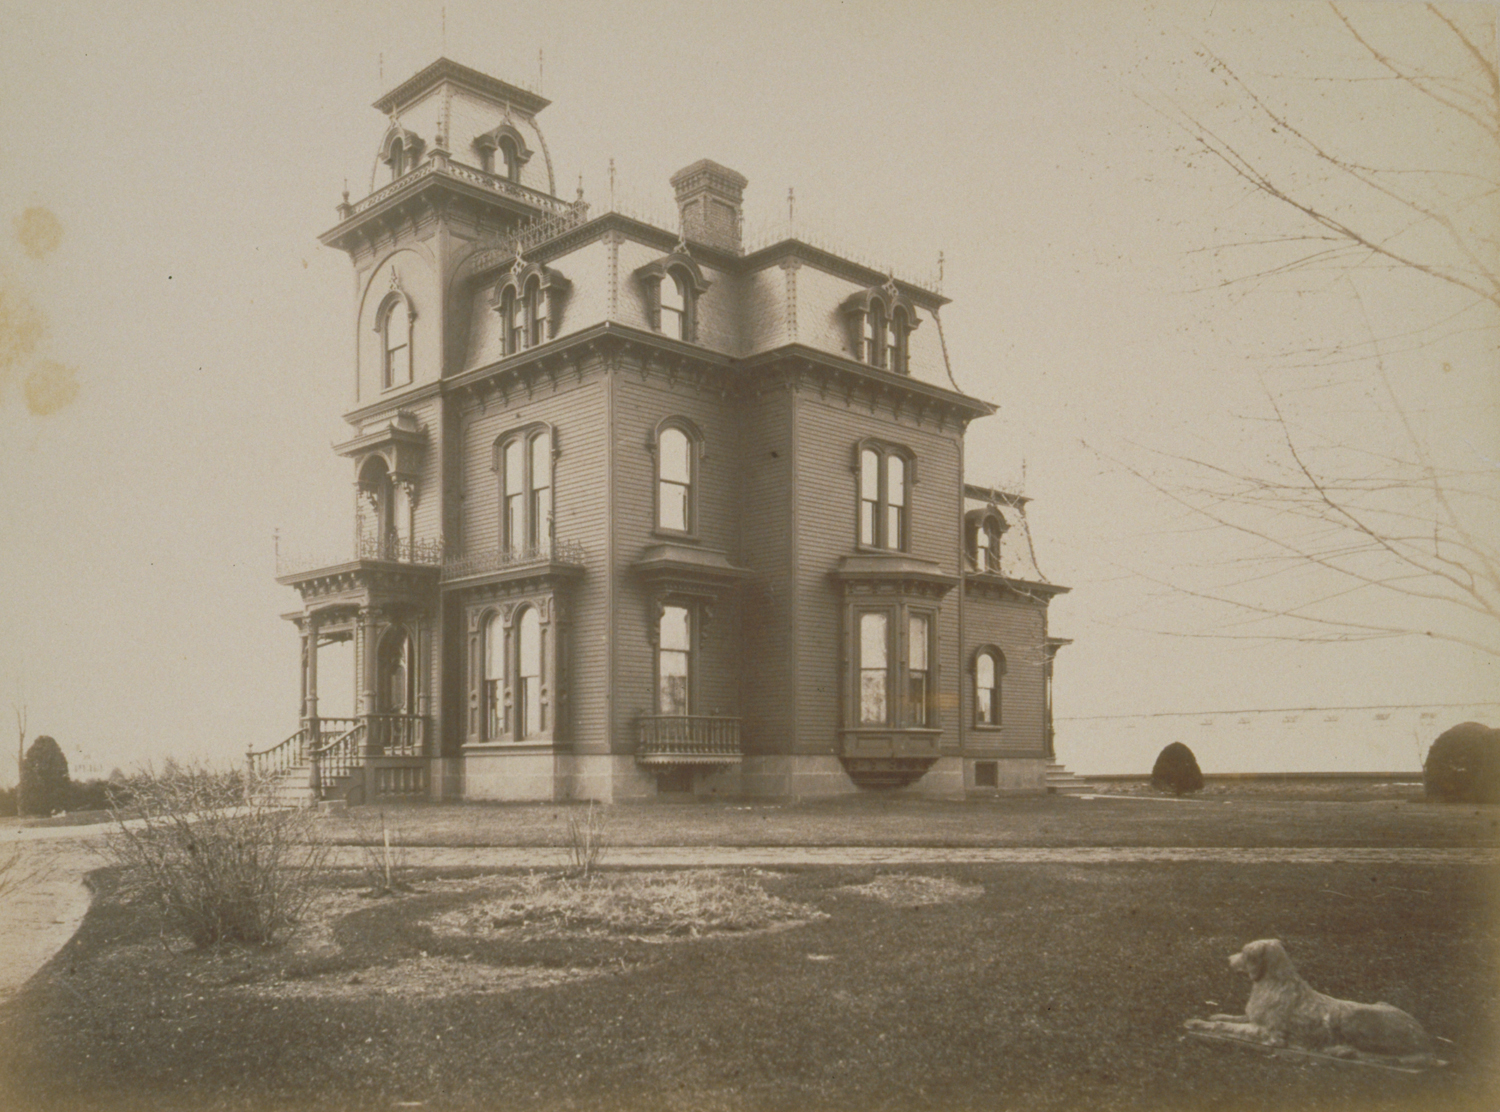 Edwin Hills House, Plainville, Connecticut. Photograph by the Northern  Survey Company, 1880s. The Connecticut Historical Society, 2000.191.224